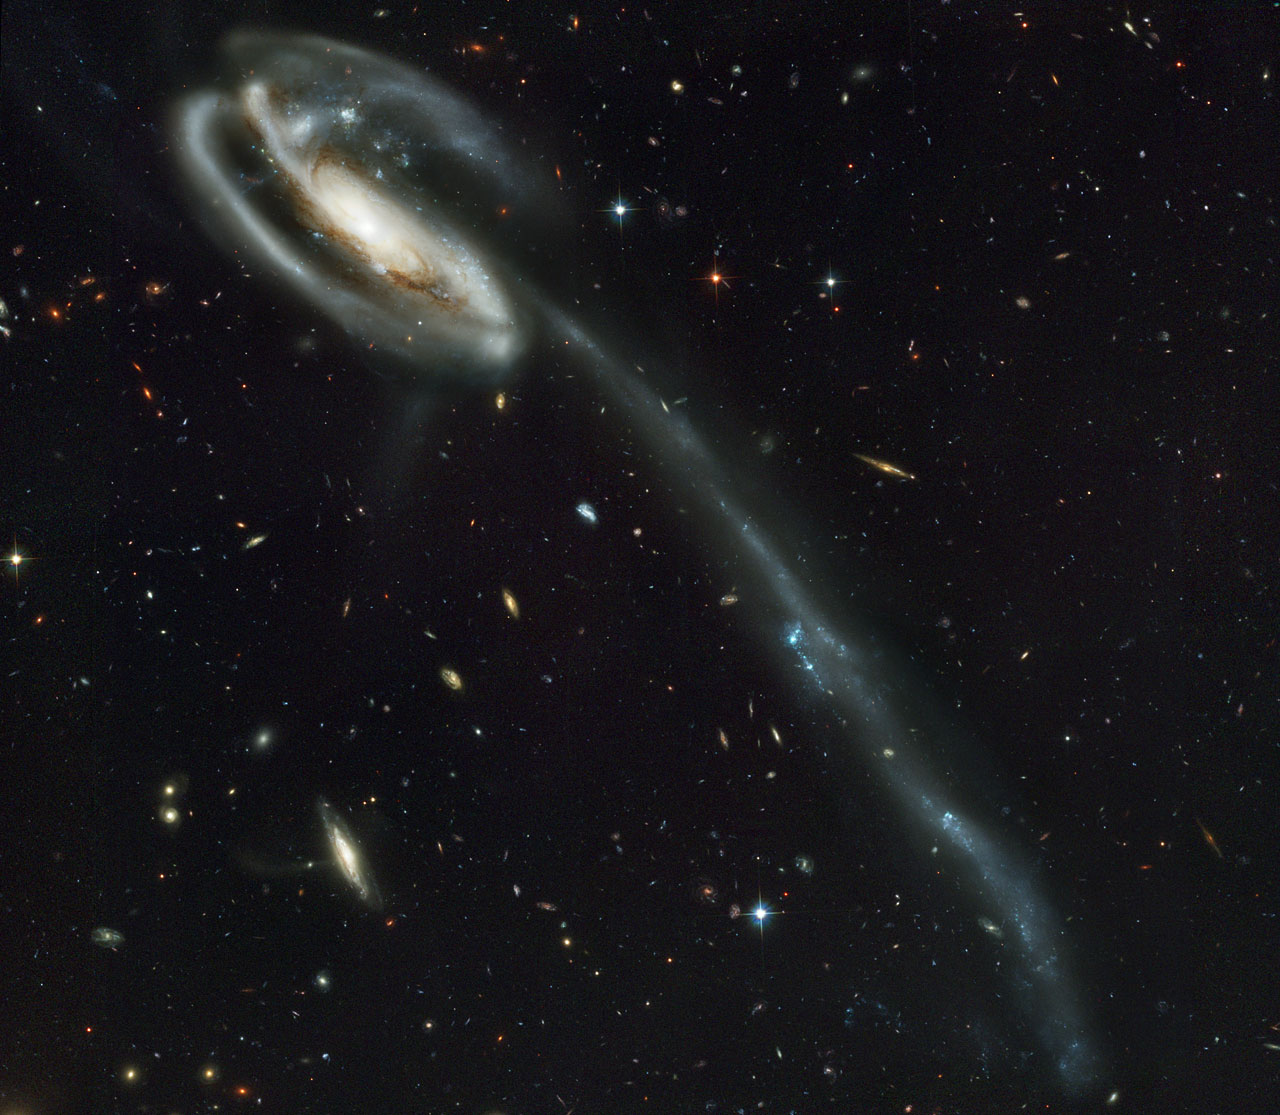 A Wallpaper Of Distant Galaxies Is A Stunning Backdrop For